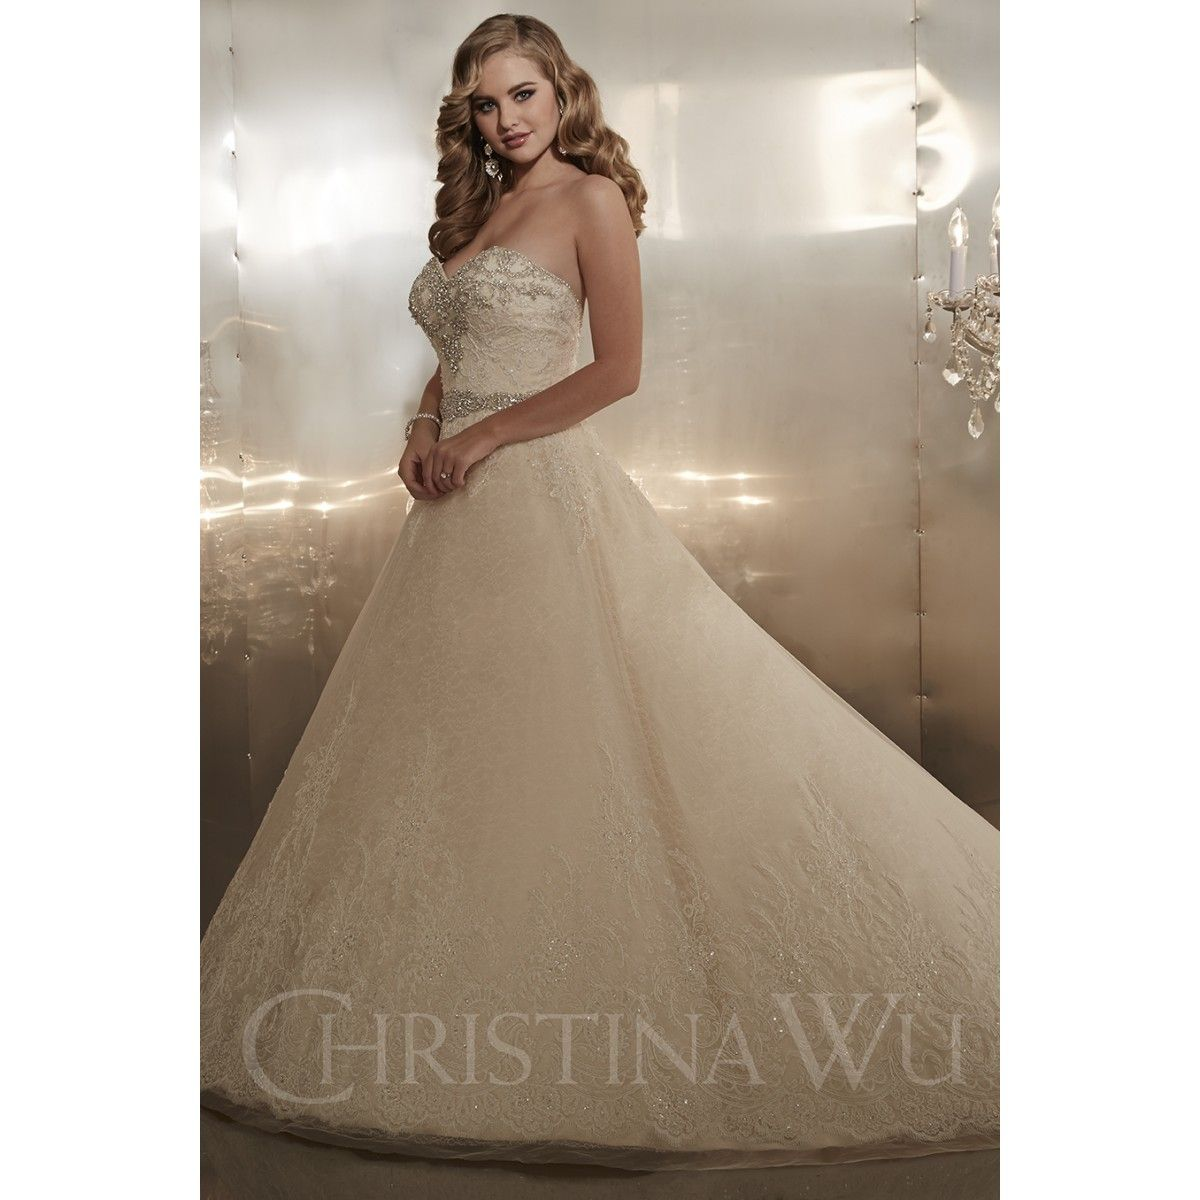 Style strapless aline gown made of lace over satin beaded